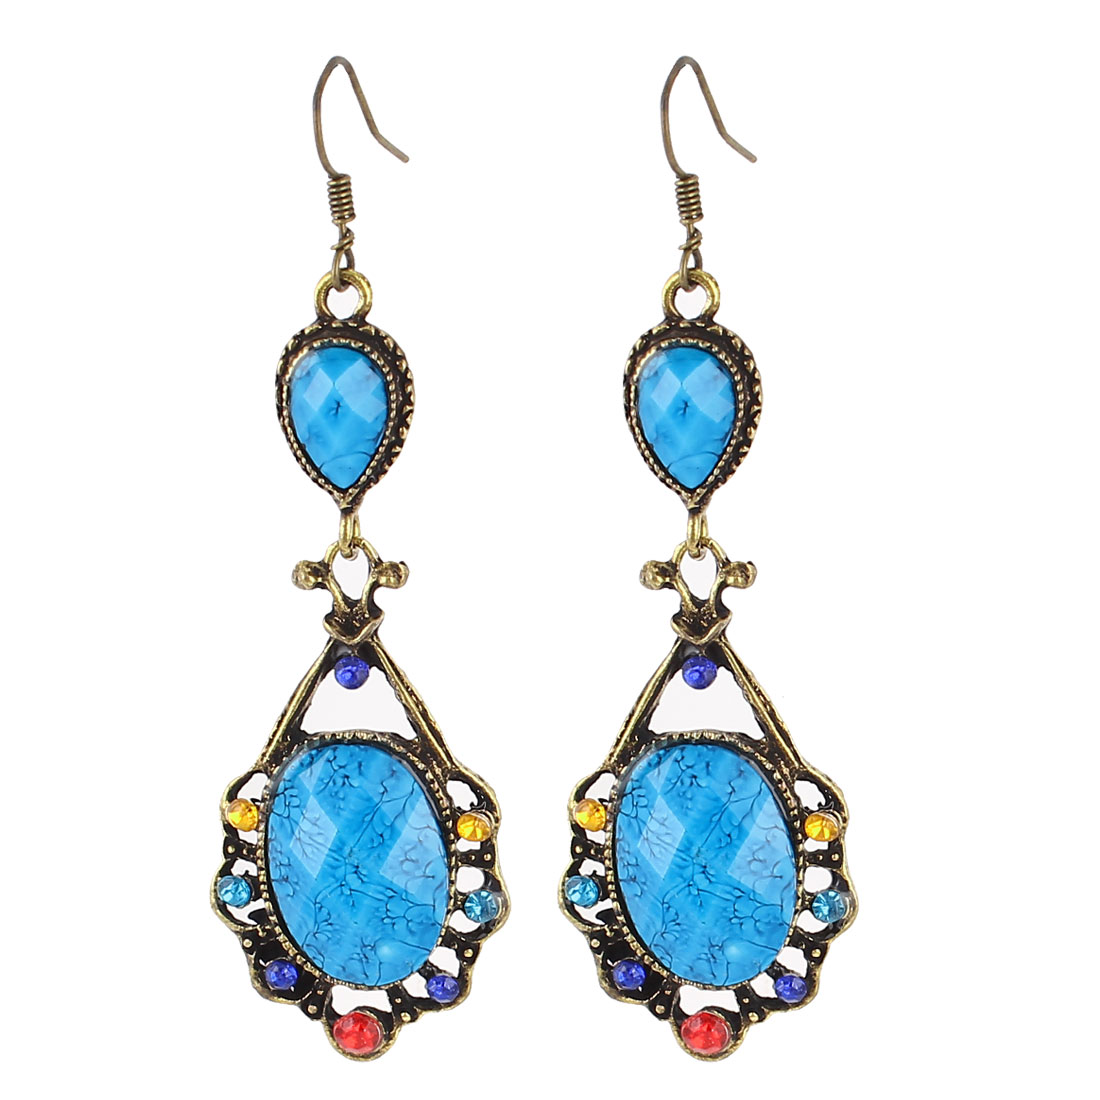 Pair Blue Rhinestone Decor Heart Shape Bronze Tone Frame Hook Earrings